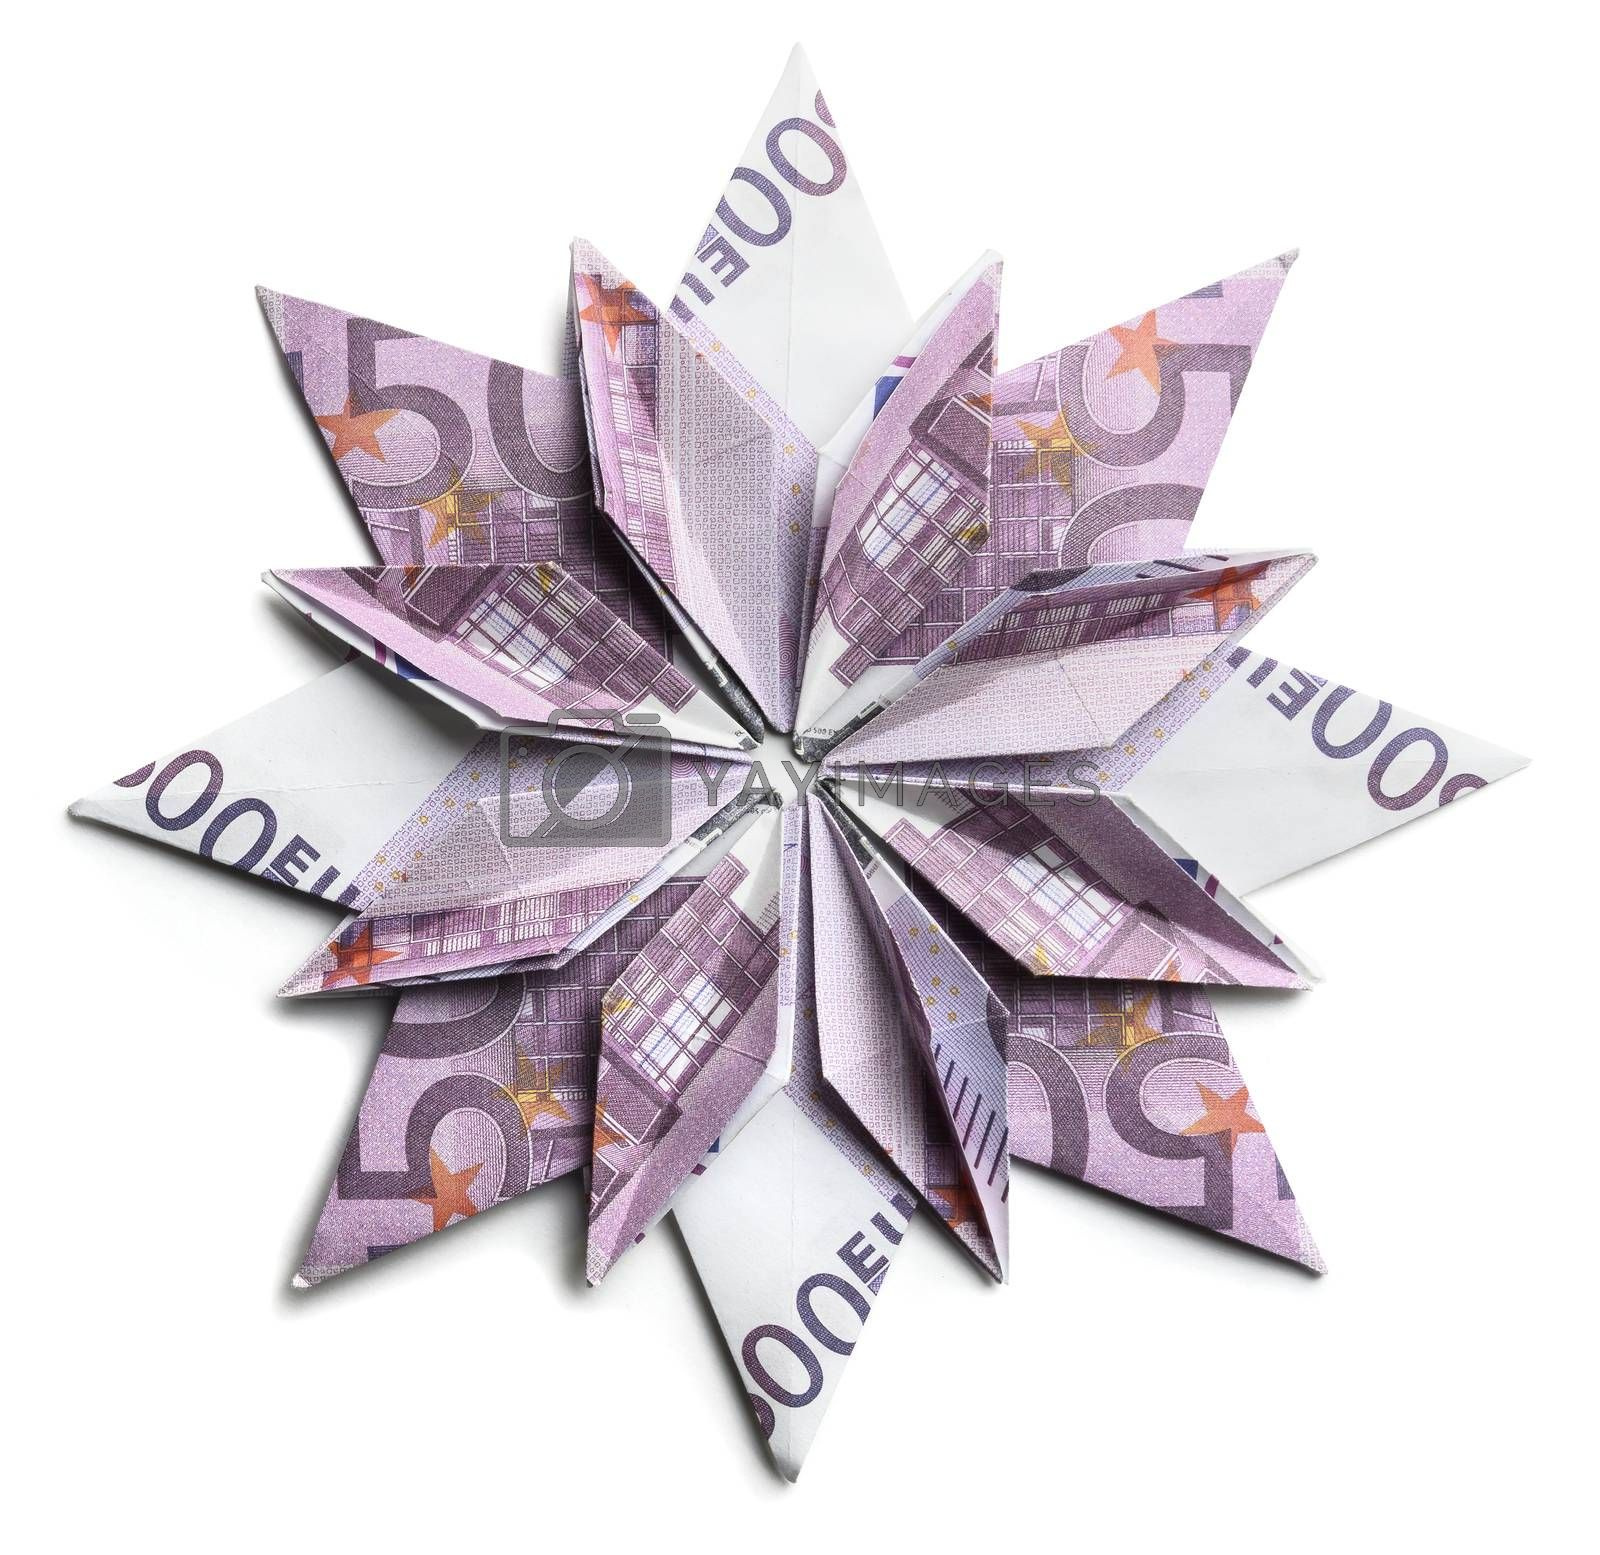 500 Euro banknote in the shape of a snowflake on a white background.